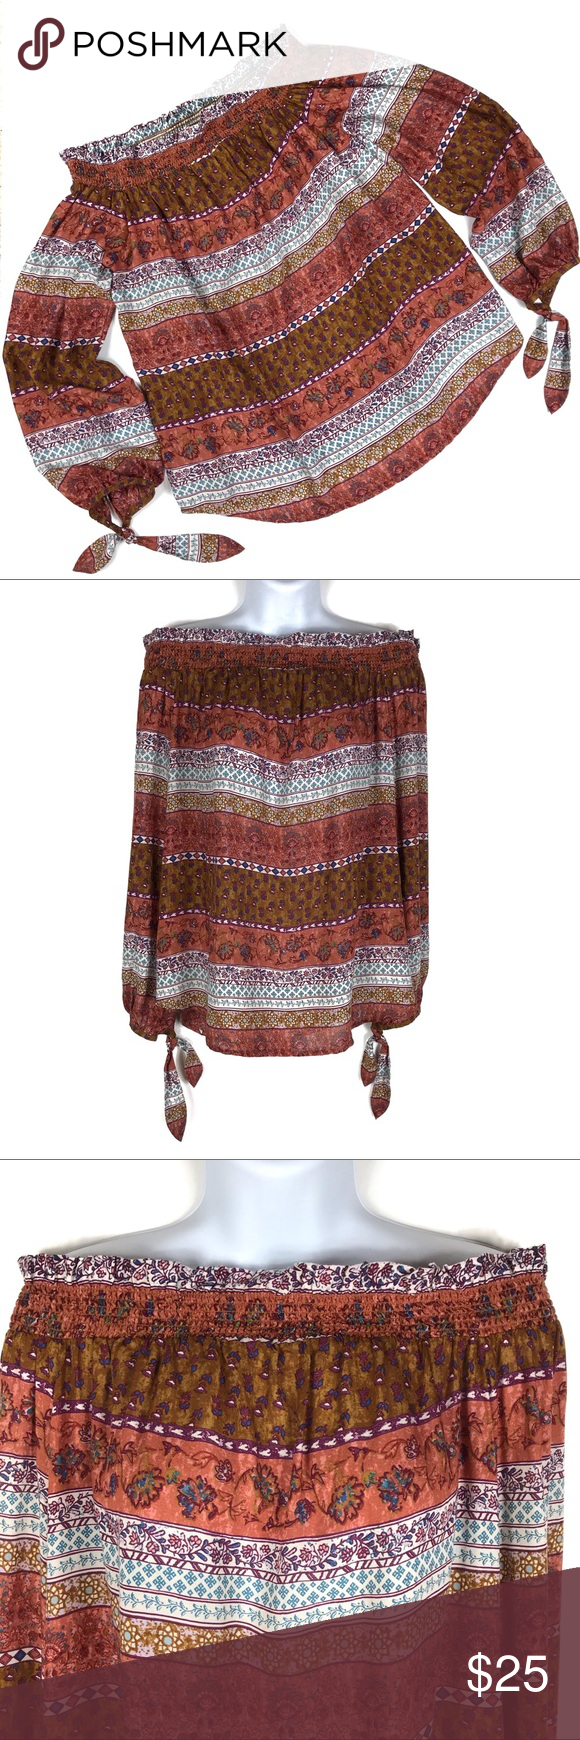 BeachLunchLounge Off The Shoulder Boho Top